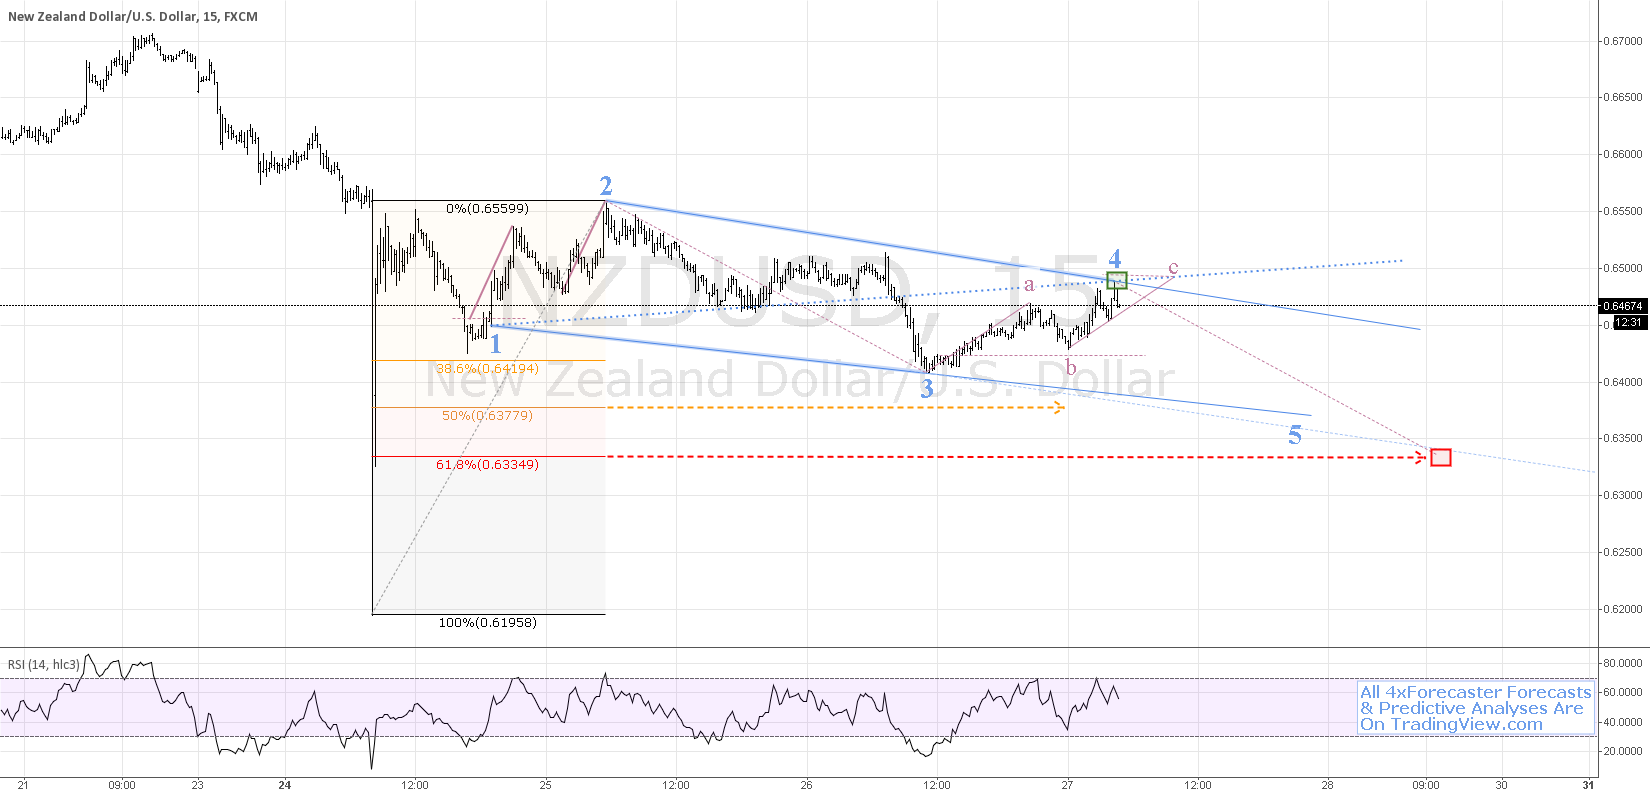 $USD v. $NZD Offers Near Complete Geo At Point-4 Opp | #forex